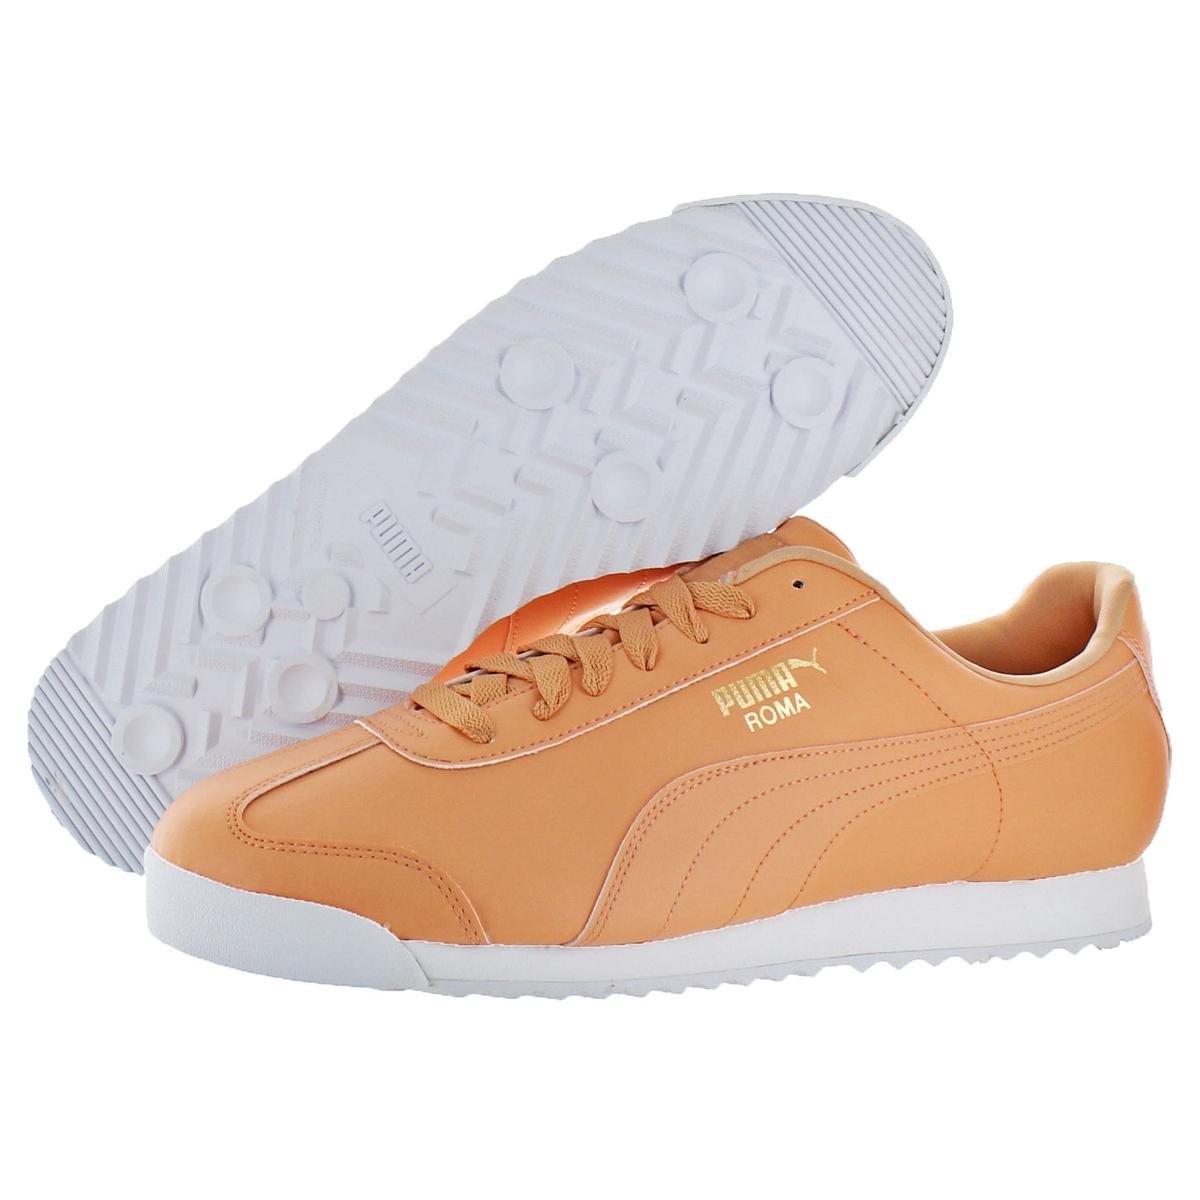 68beaaaebff8 Puma-Roma-Men-039-s-Fashion-Sneakers-Shoes